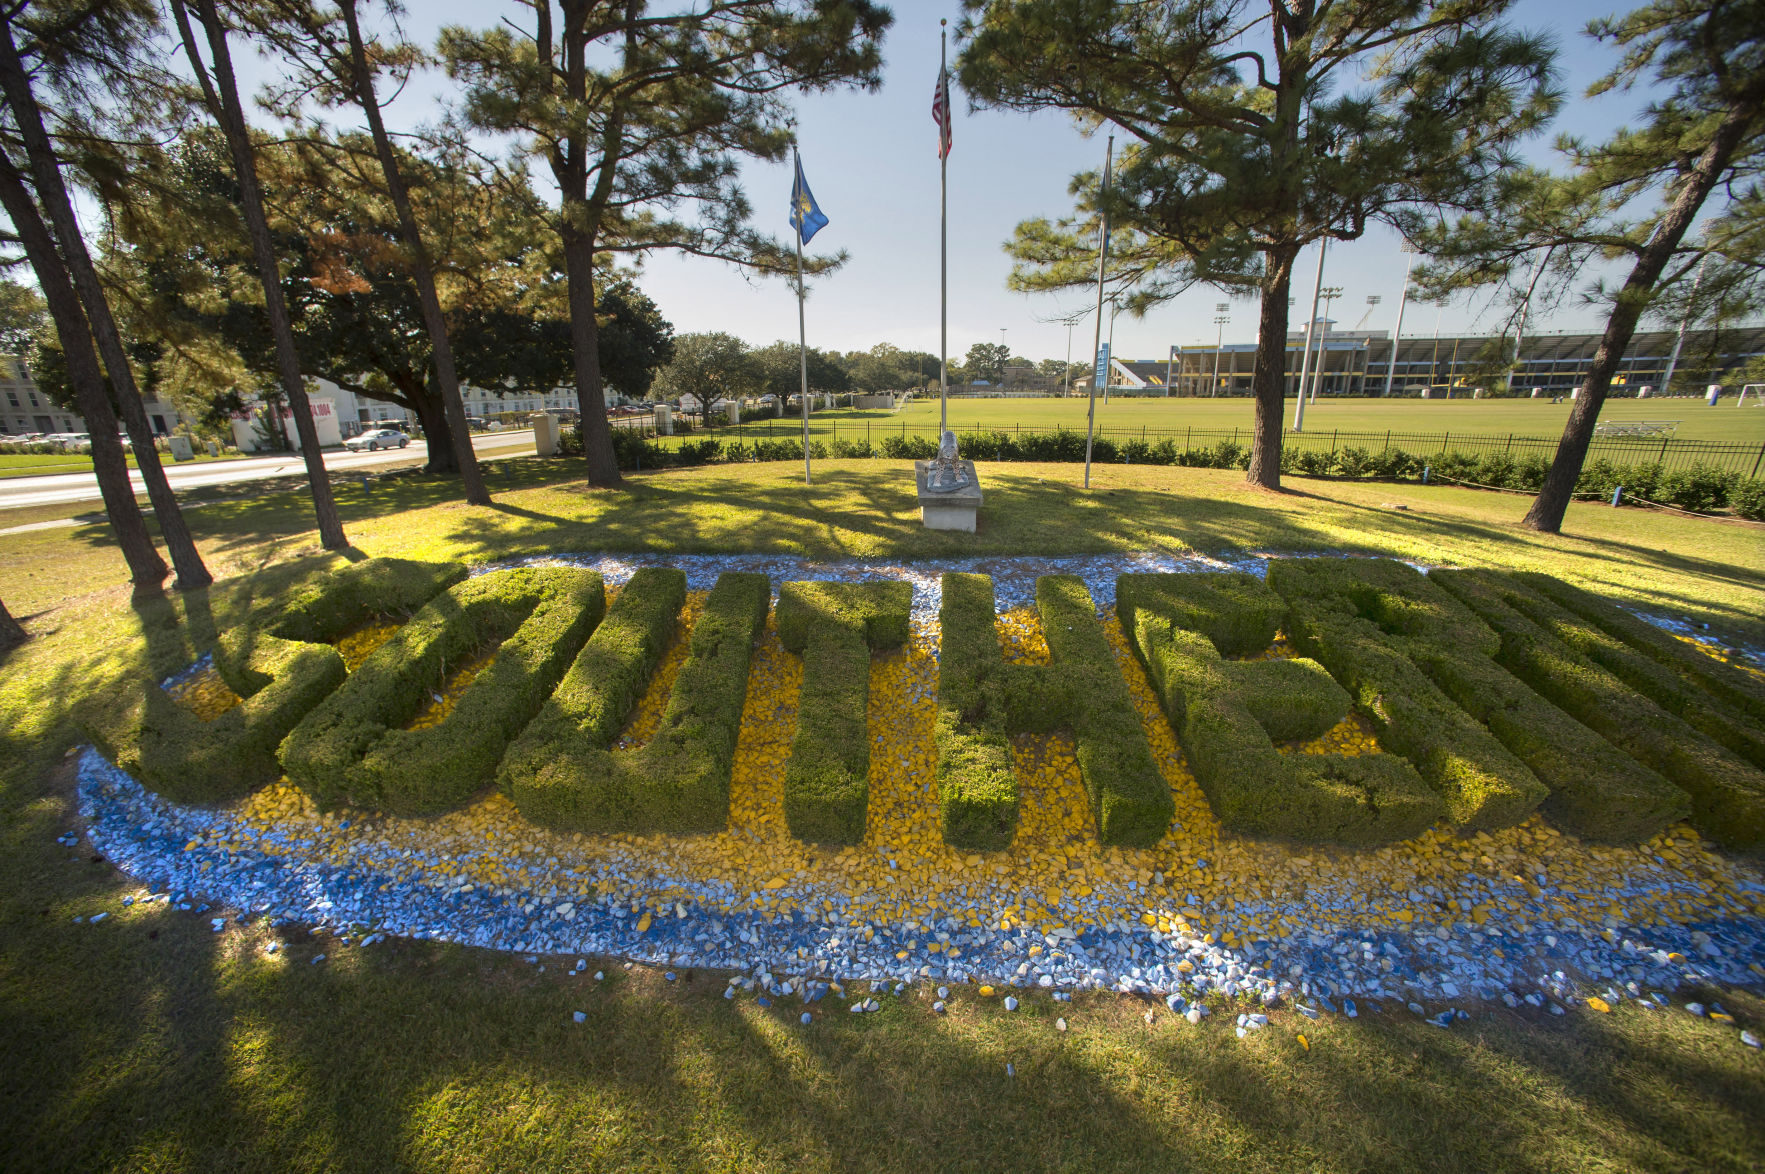 After two more Southern University administrators fired